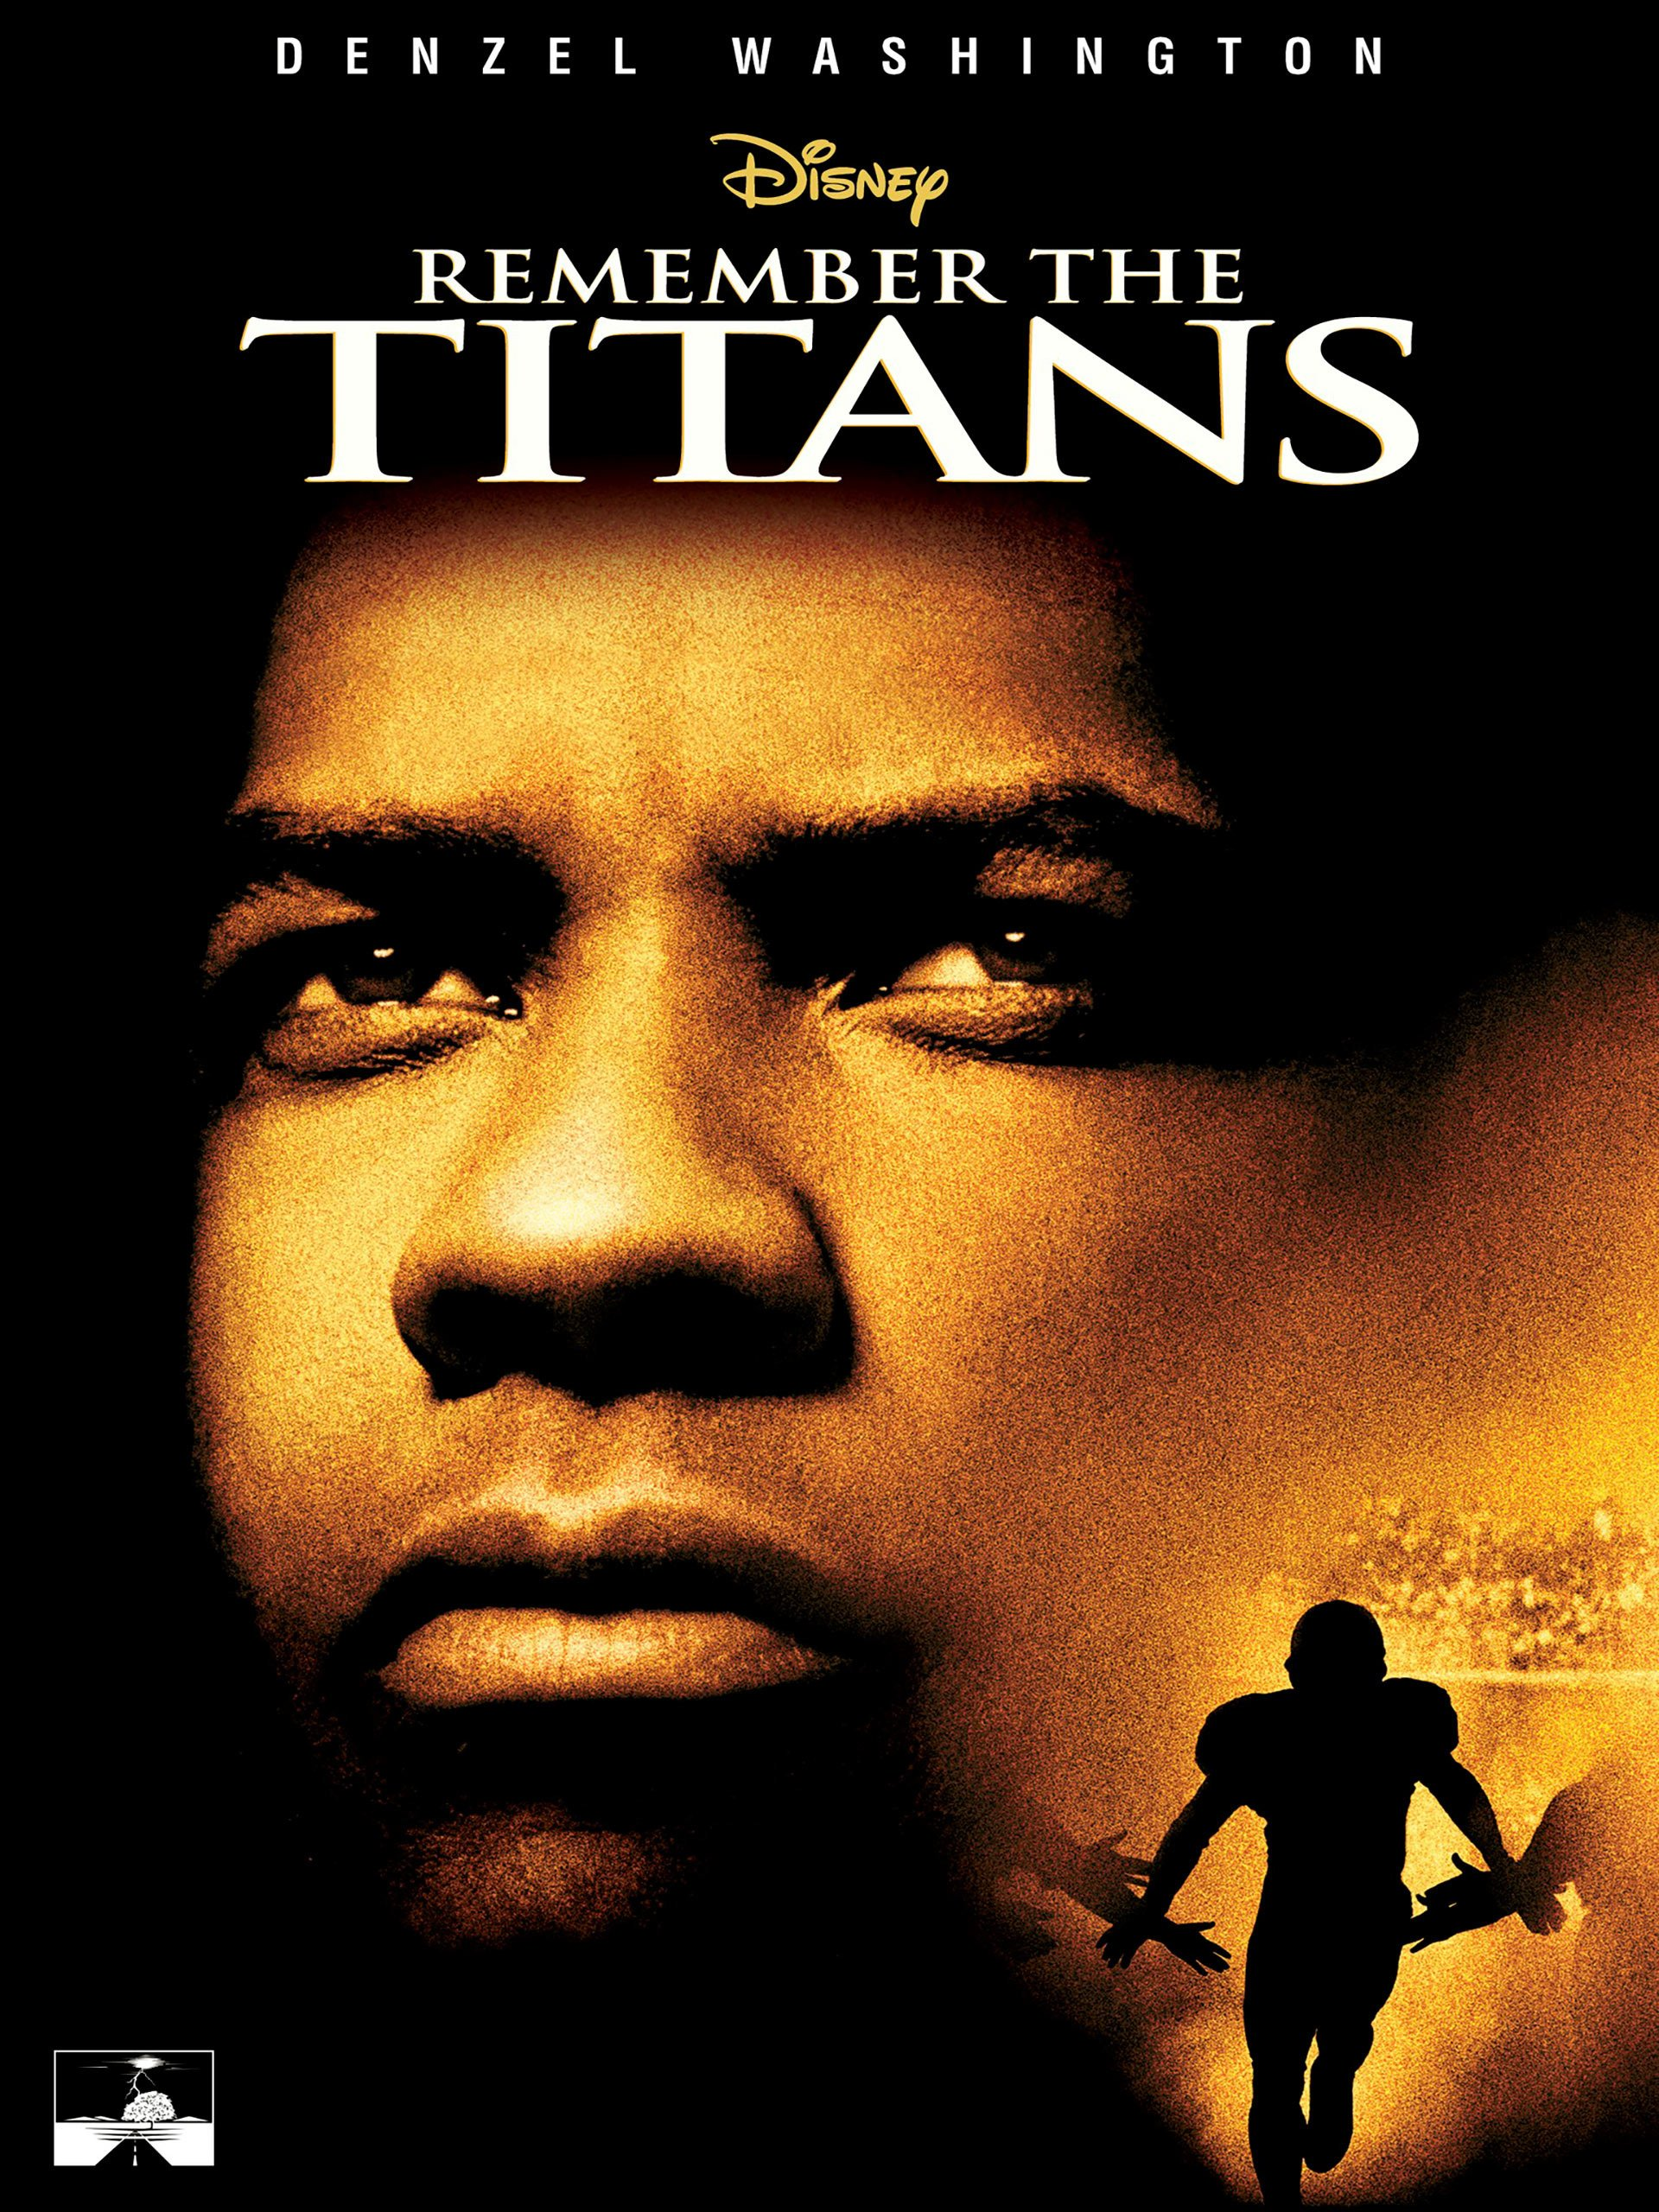 Remember the titans 2000 movie download free full.